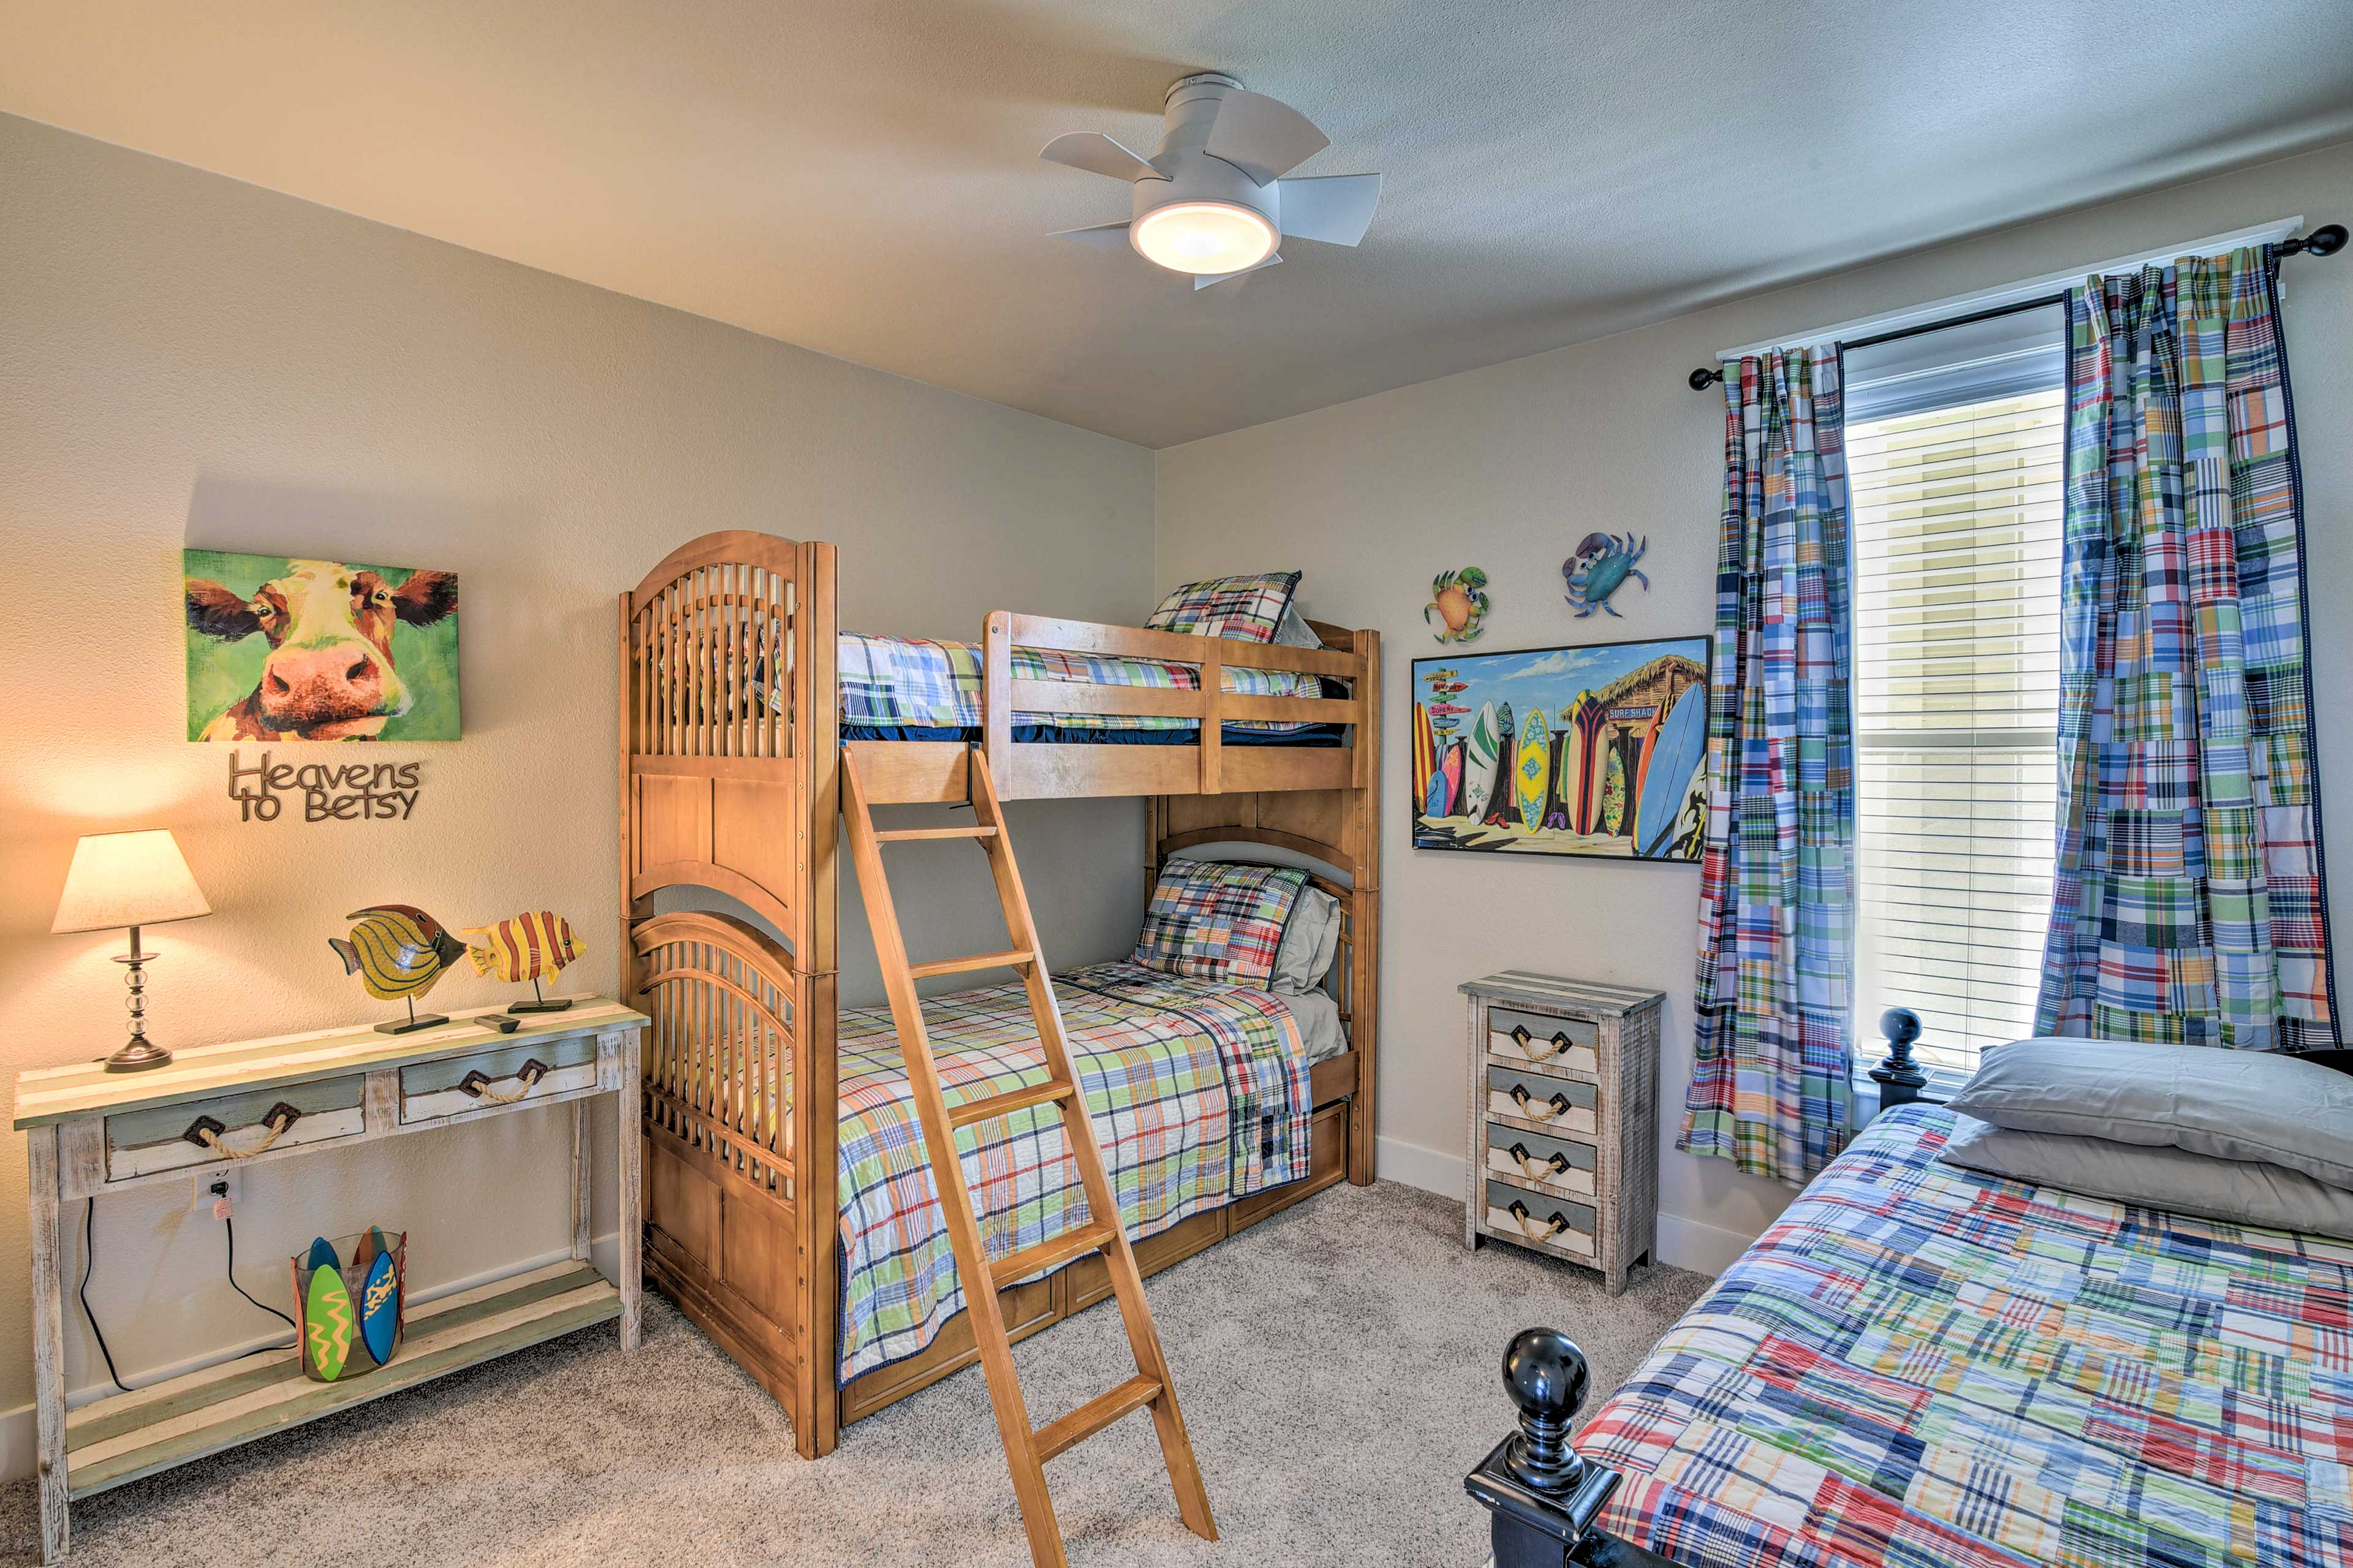 With a twin-over-twin bunk bed and a day bed this room sleeps 3.